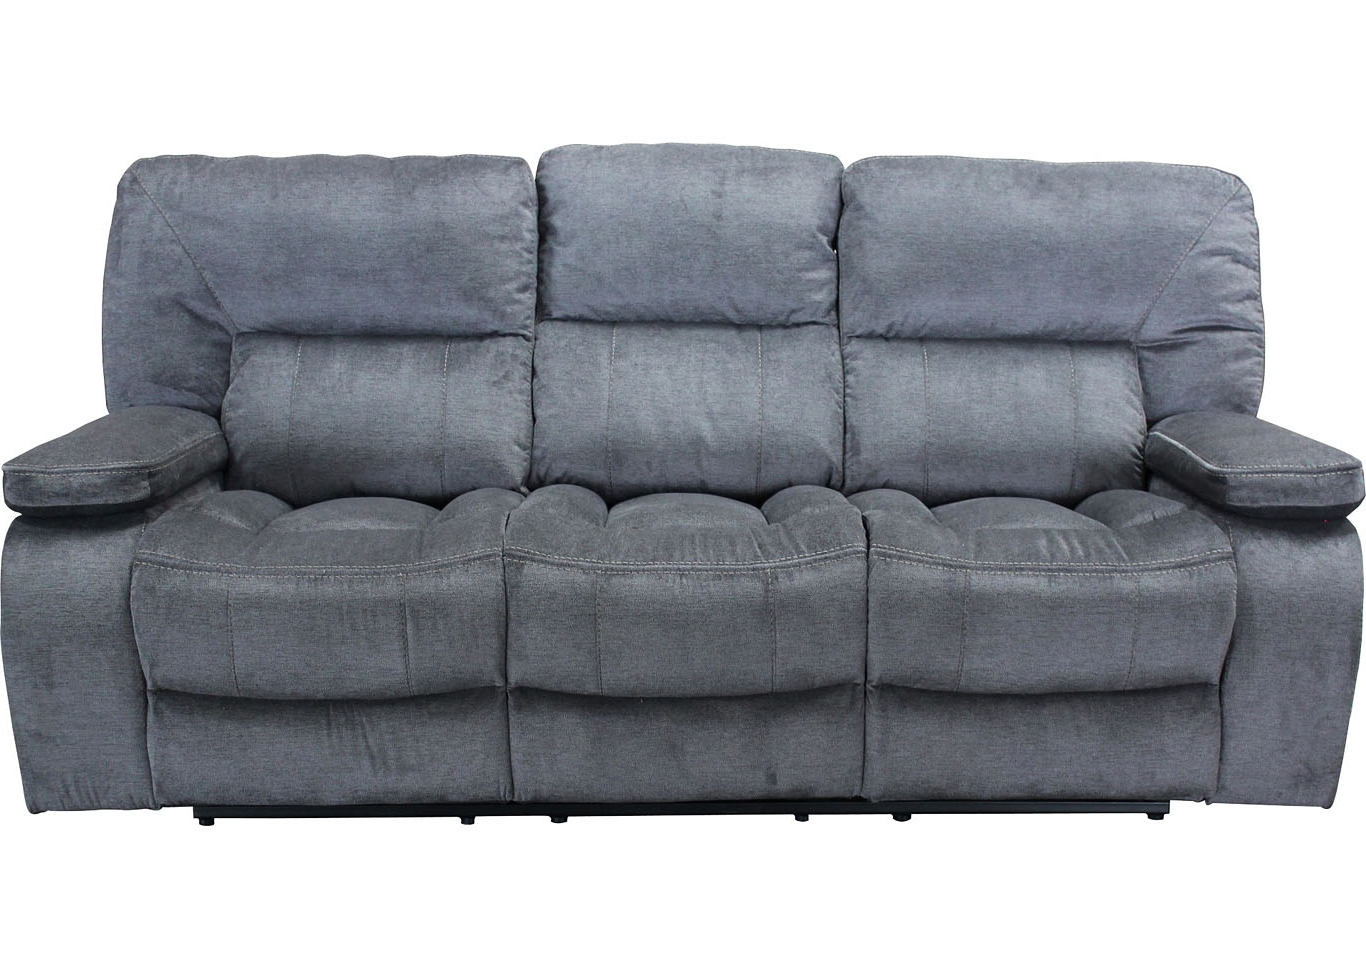 Camila Poly Blend Sectional Sofas Off White With Fashionable Chapman Triple Reclining Sofa And Dual Reclining Love Seat (View 6 of 25)